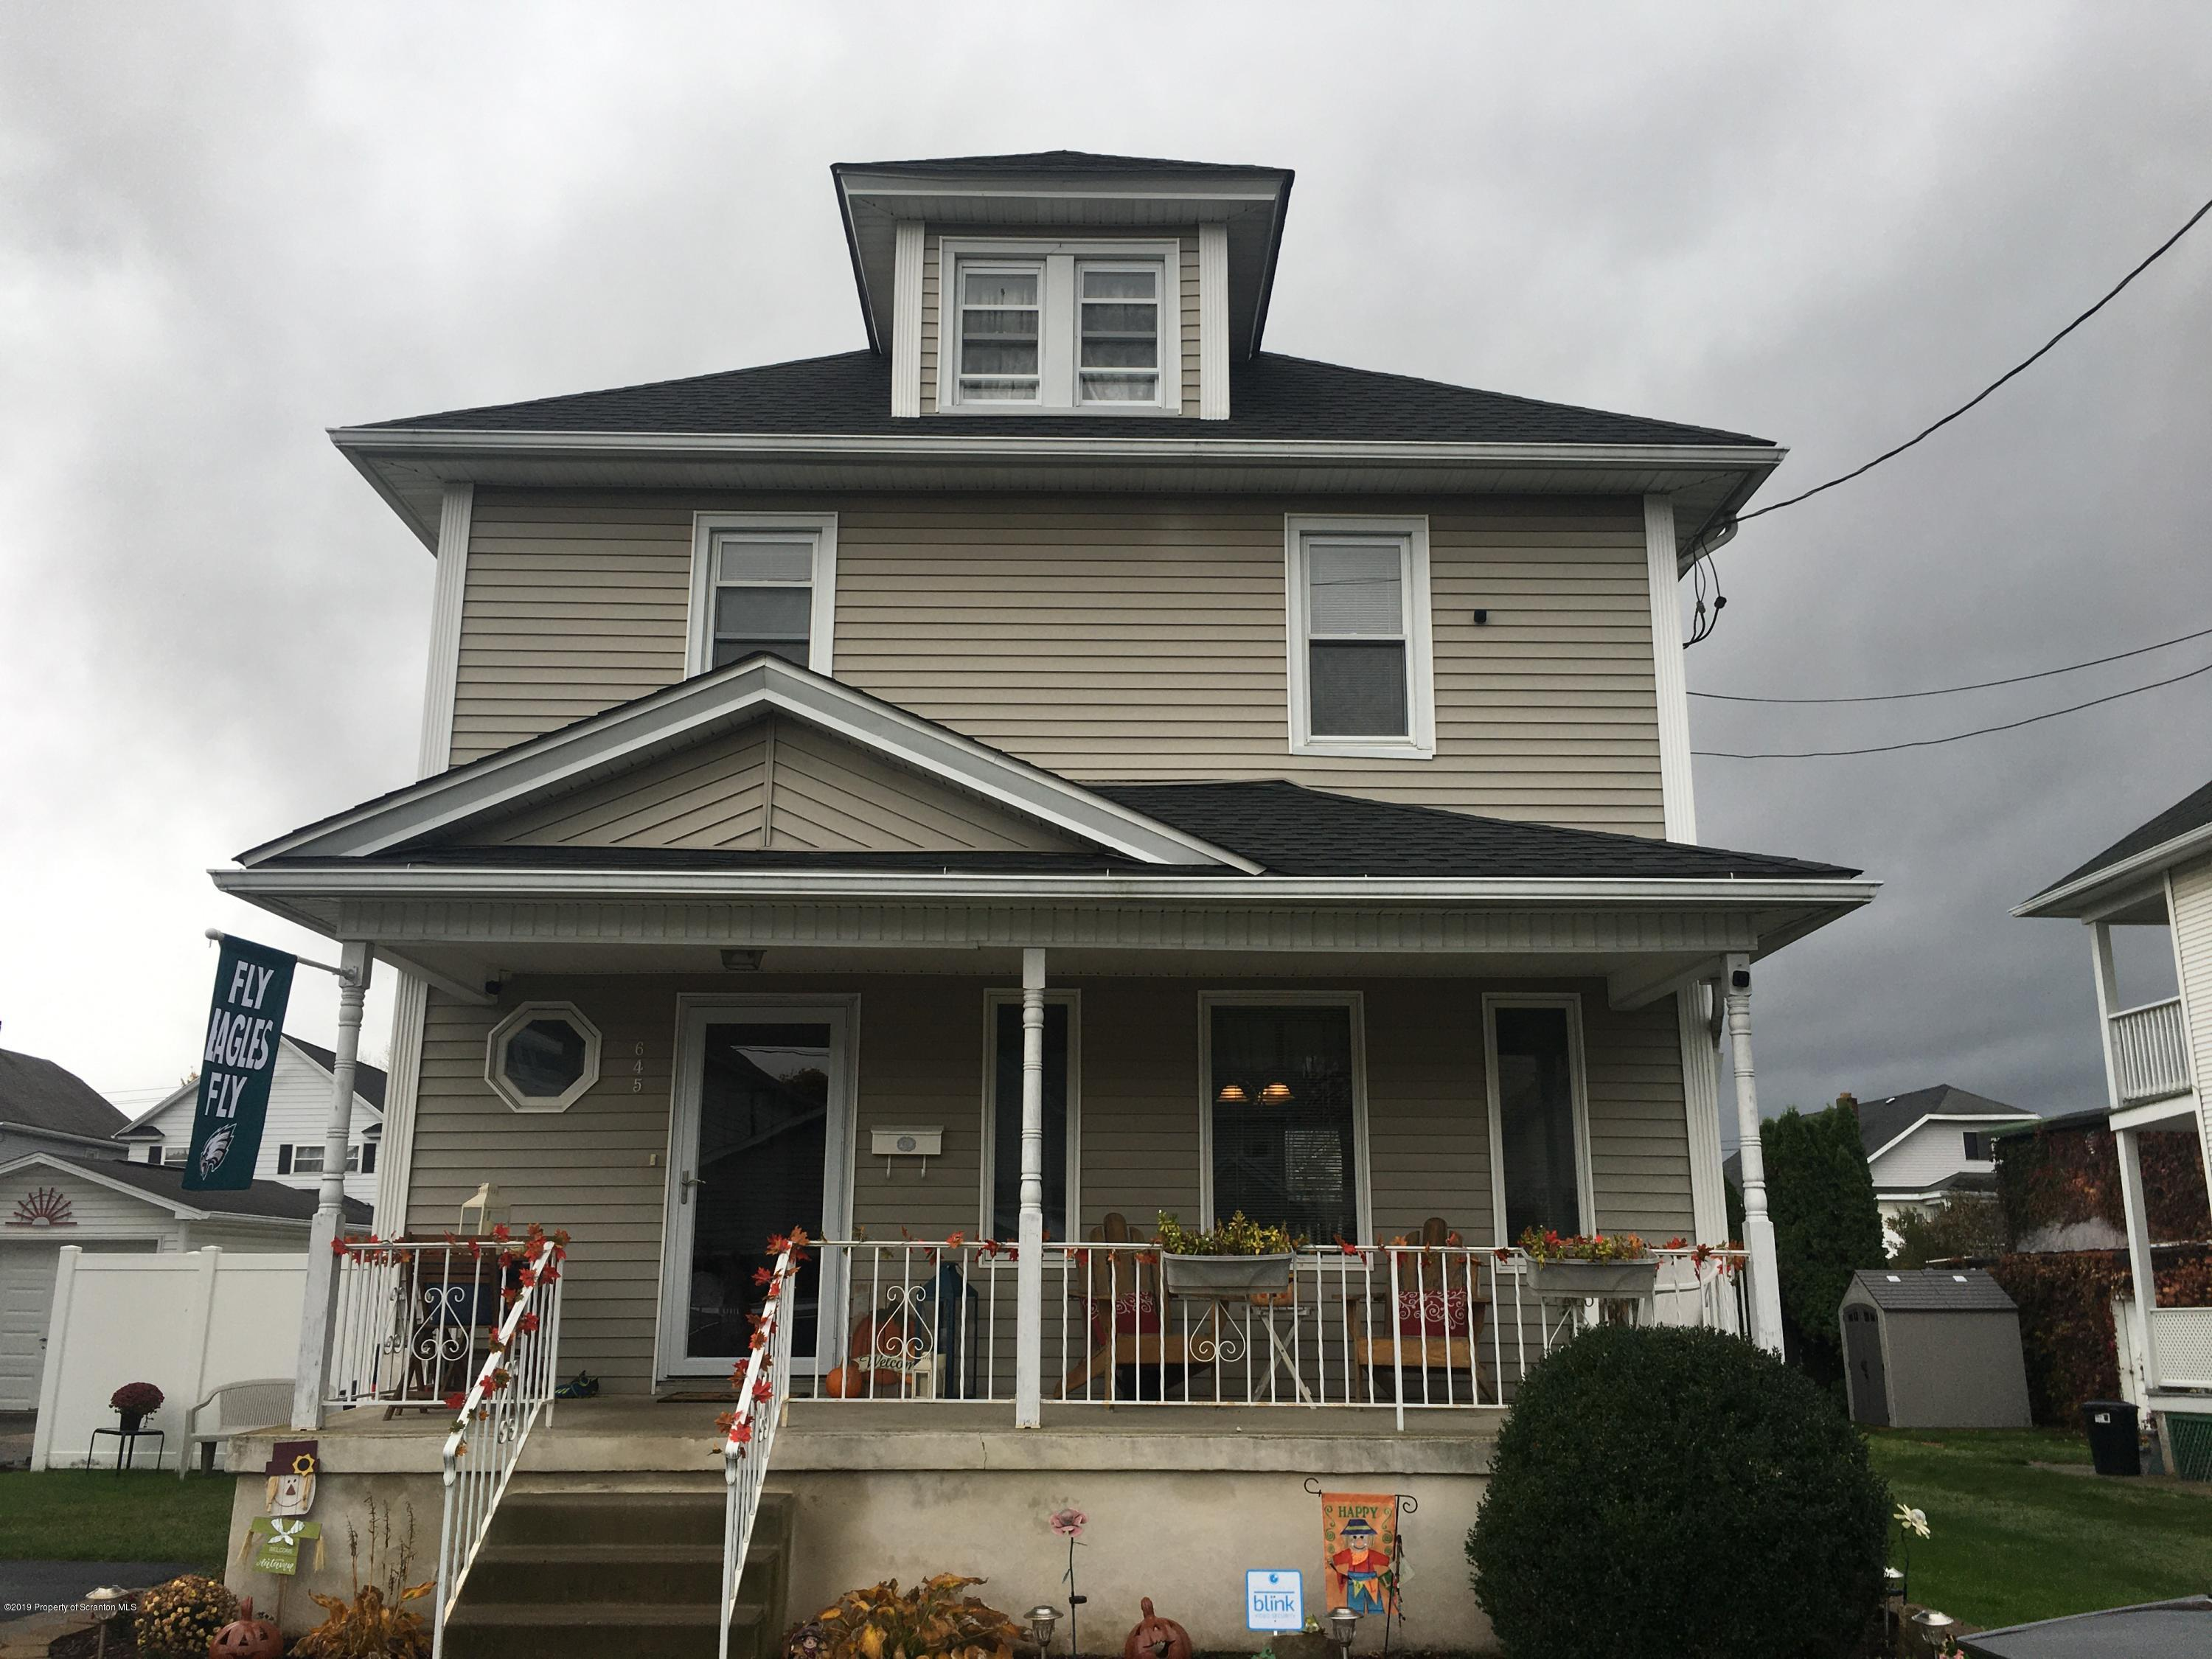 645 Pine St, Olyphant, Pennsylvania 18447, 3 Bedrooms Bedrooms, 7 Rooms Rooms,2 BathroomsBathrooms,Single Family,For Sale,Pine,19-5199